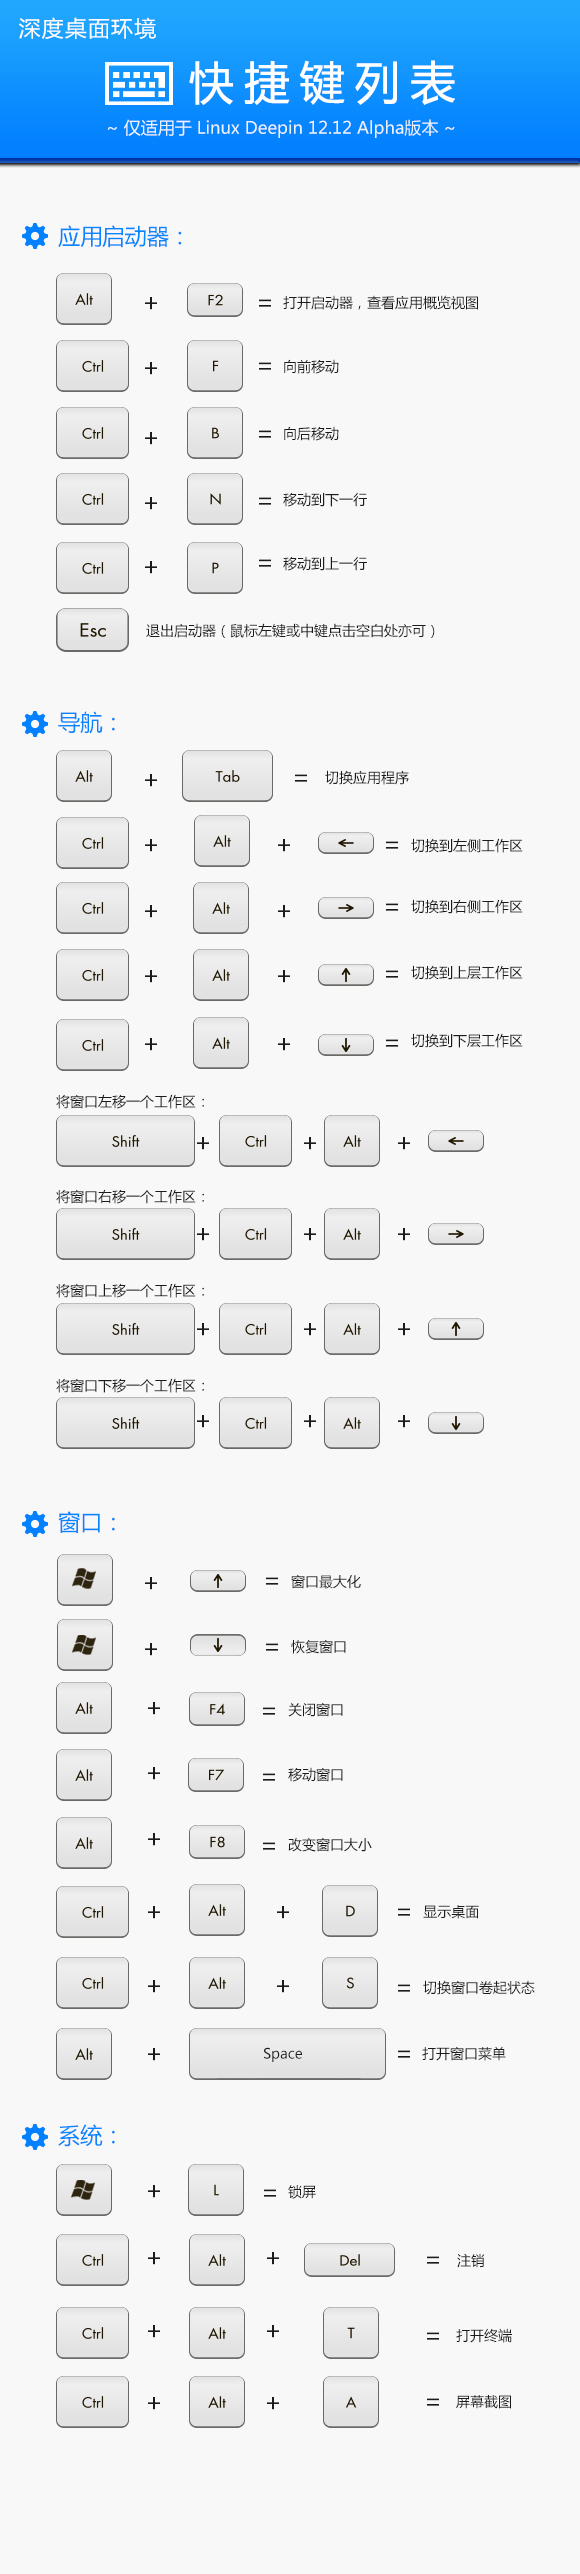 Deepin 12.12 Shortcuts